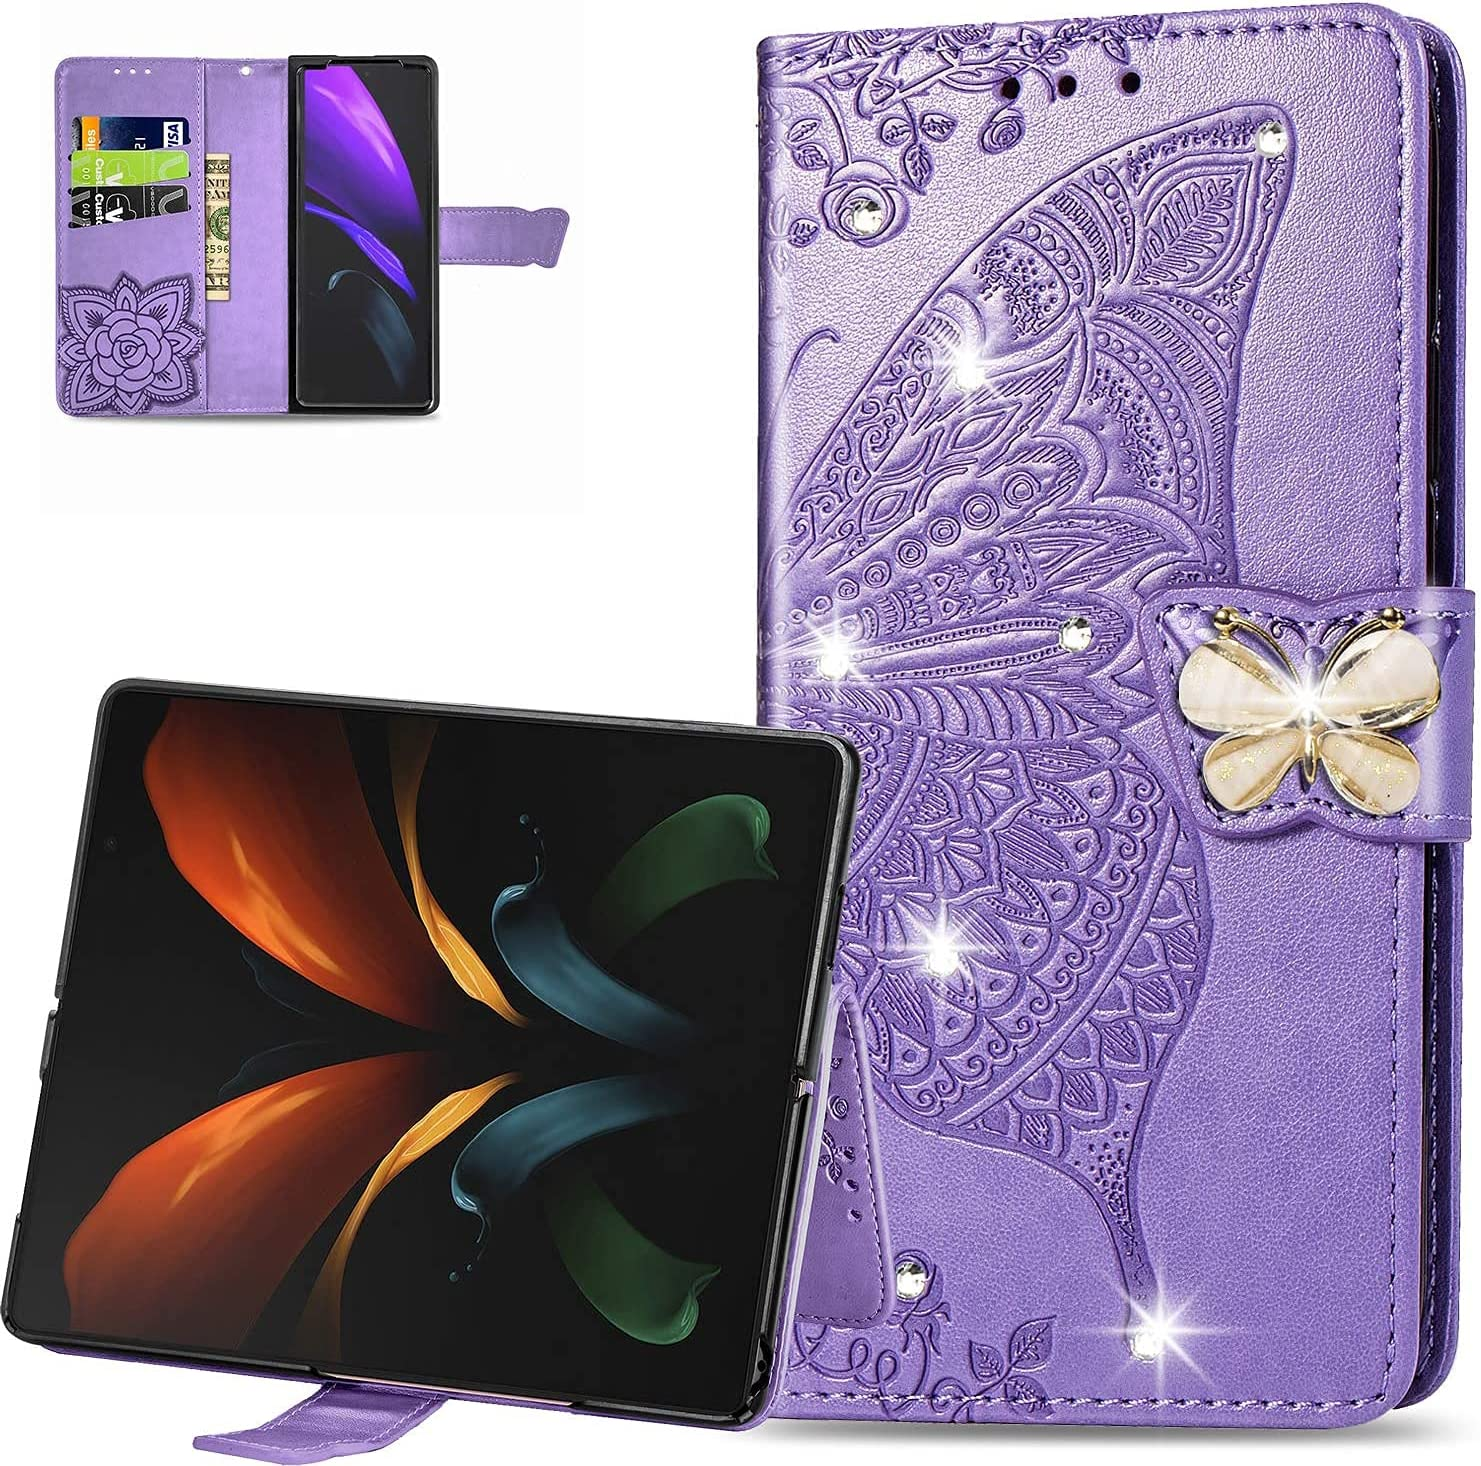 CCSmall Samsung Galaxy Z Fold3 5G Wallet Case,3D Butterfly Embossing Slim Flip PU Leather with Magnetic Closure Credit Card Slots Holder Phone Cover for Samsung Galaxy Z Fold 3 Rhinestone Purple